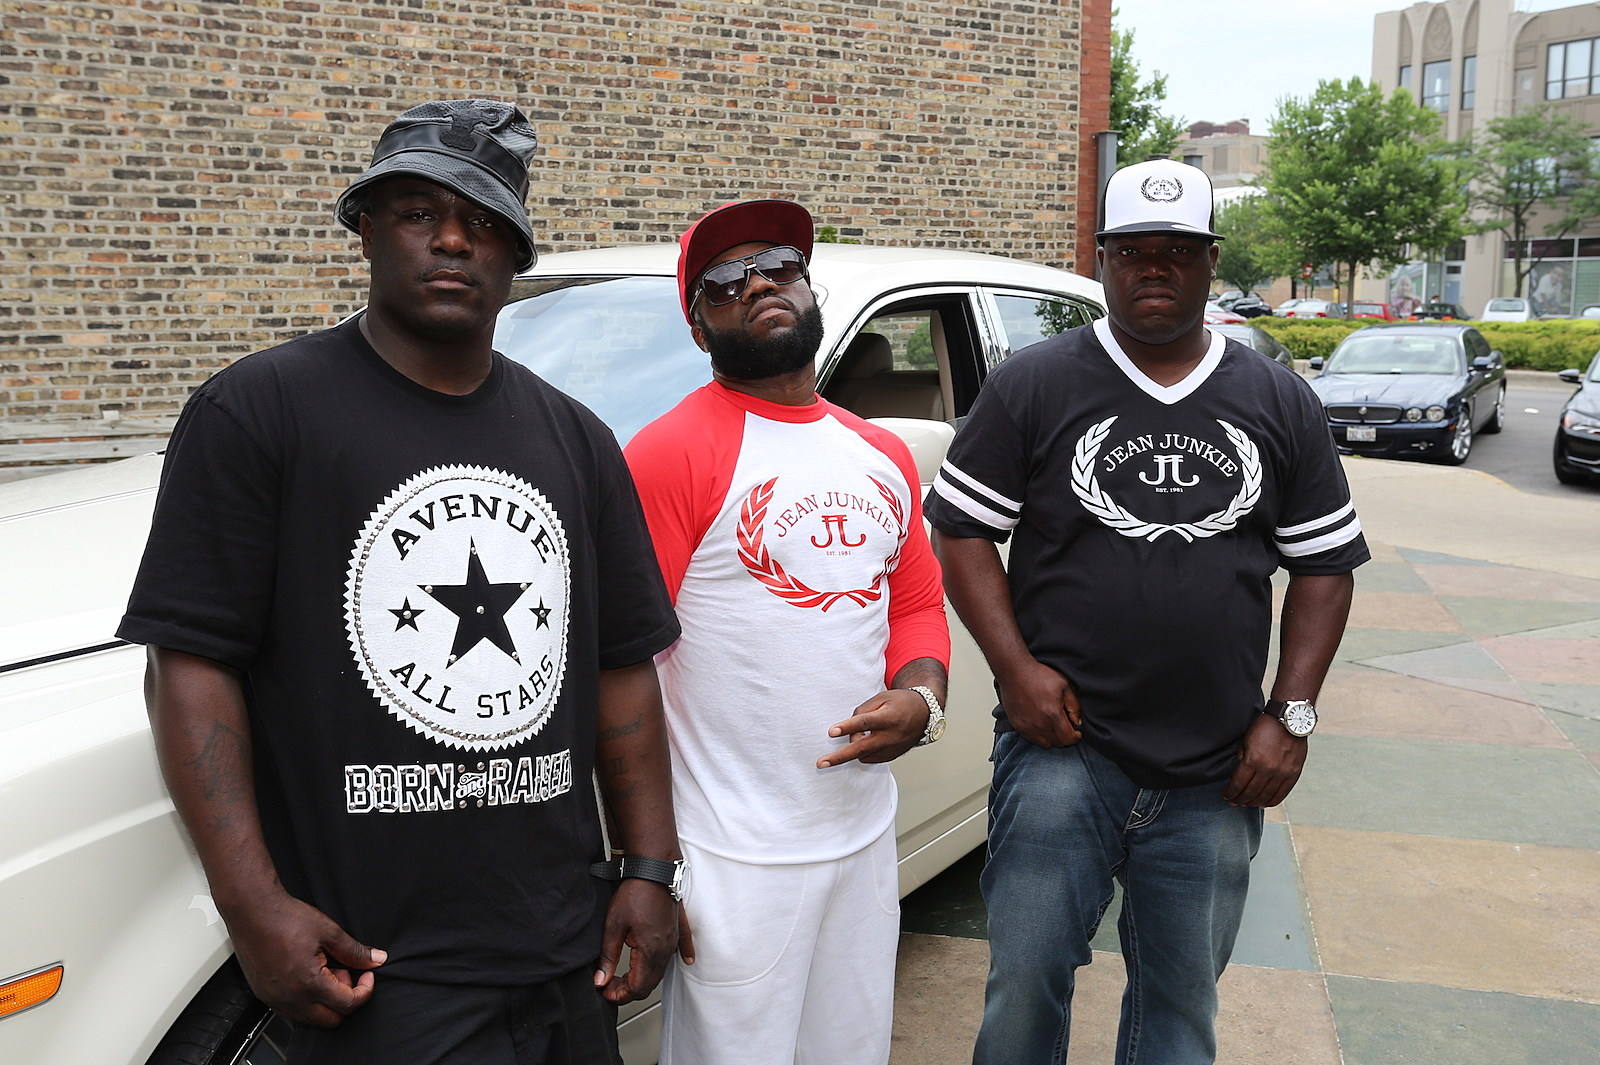 chicago legends do or die reflect on their influential career xxl